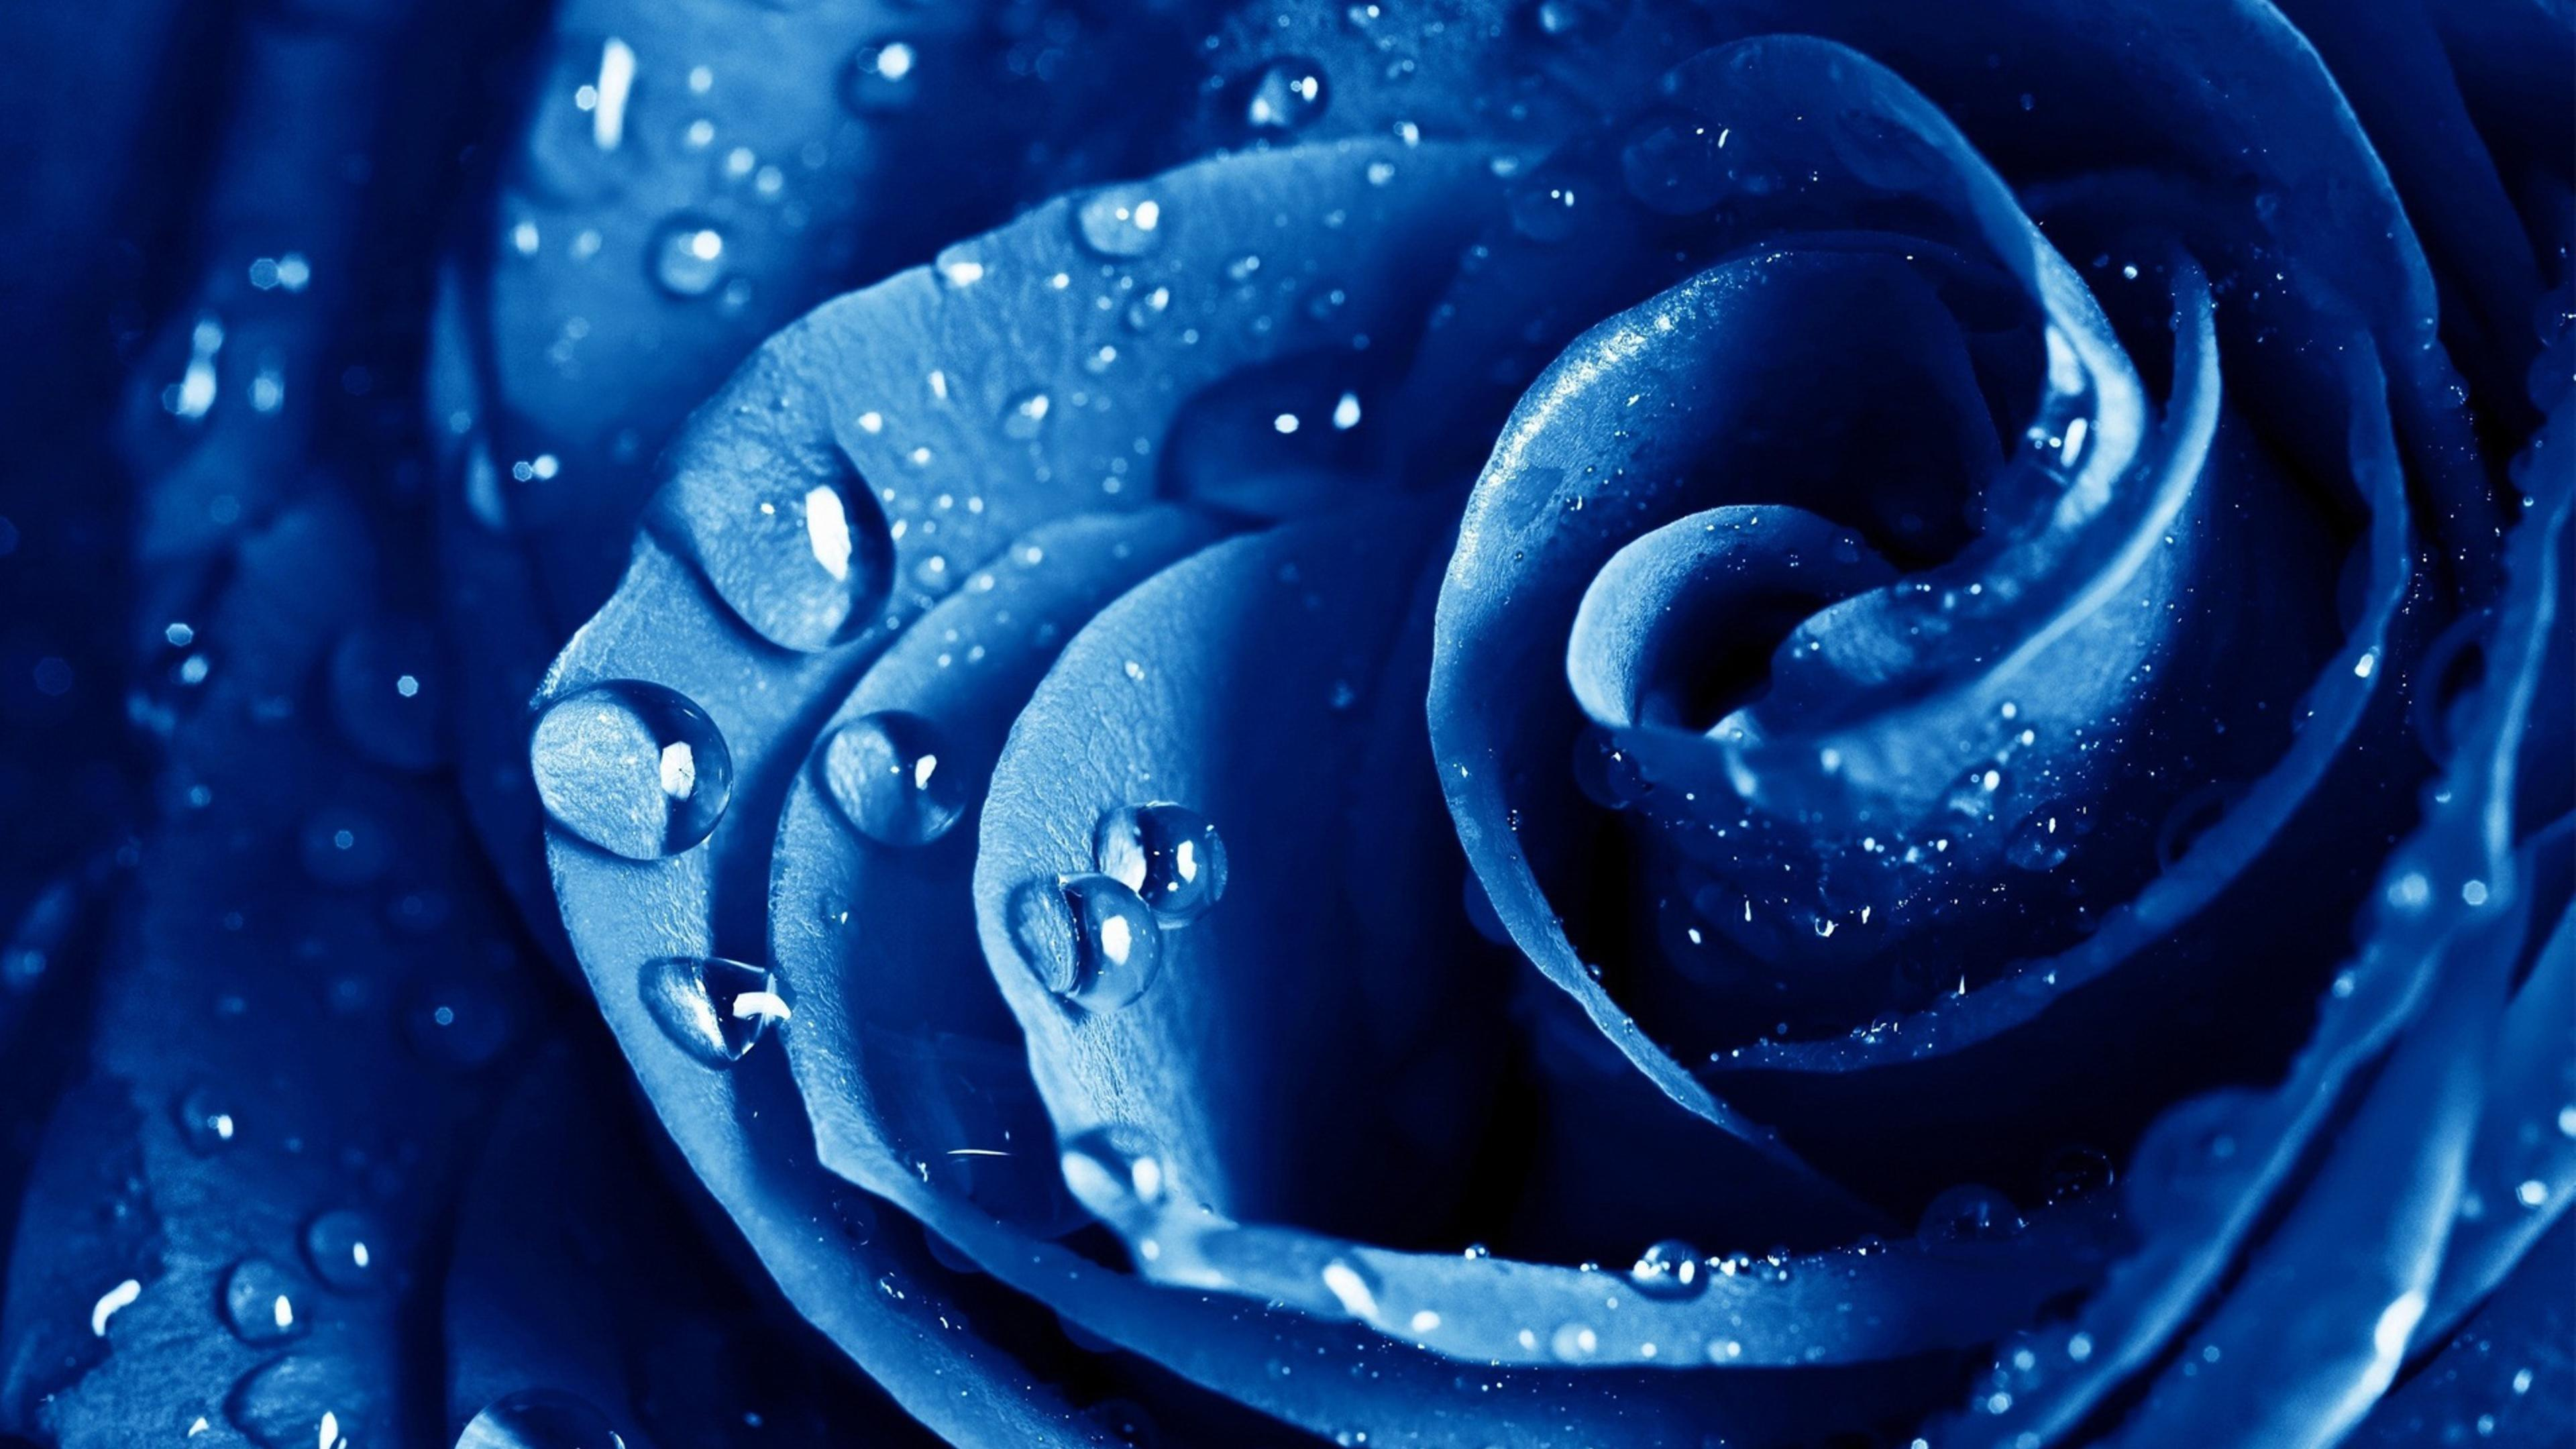 Fresh blue rose with rain drops wallpaper download 3840x2160 altavistaventures Image collections